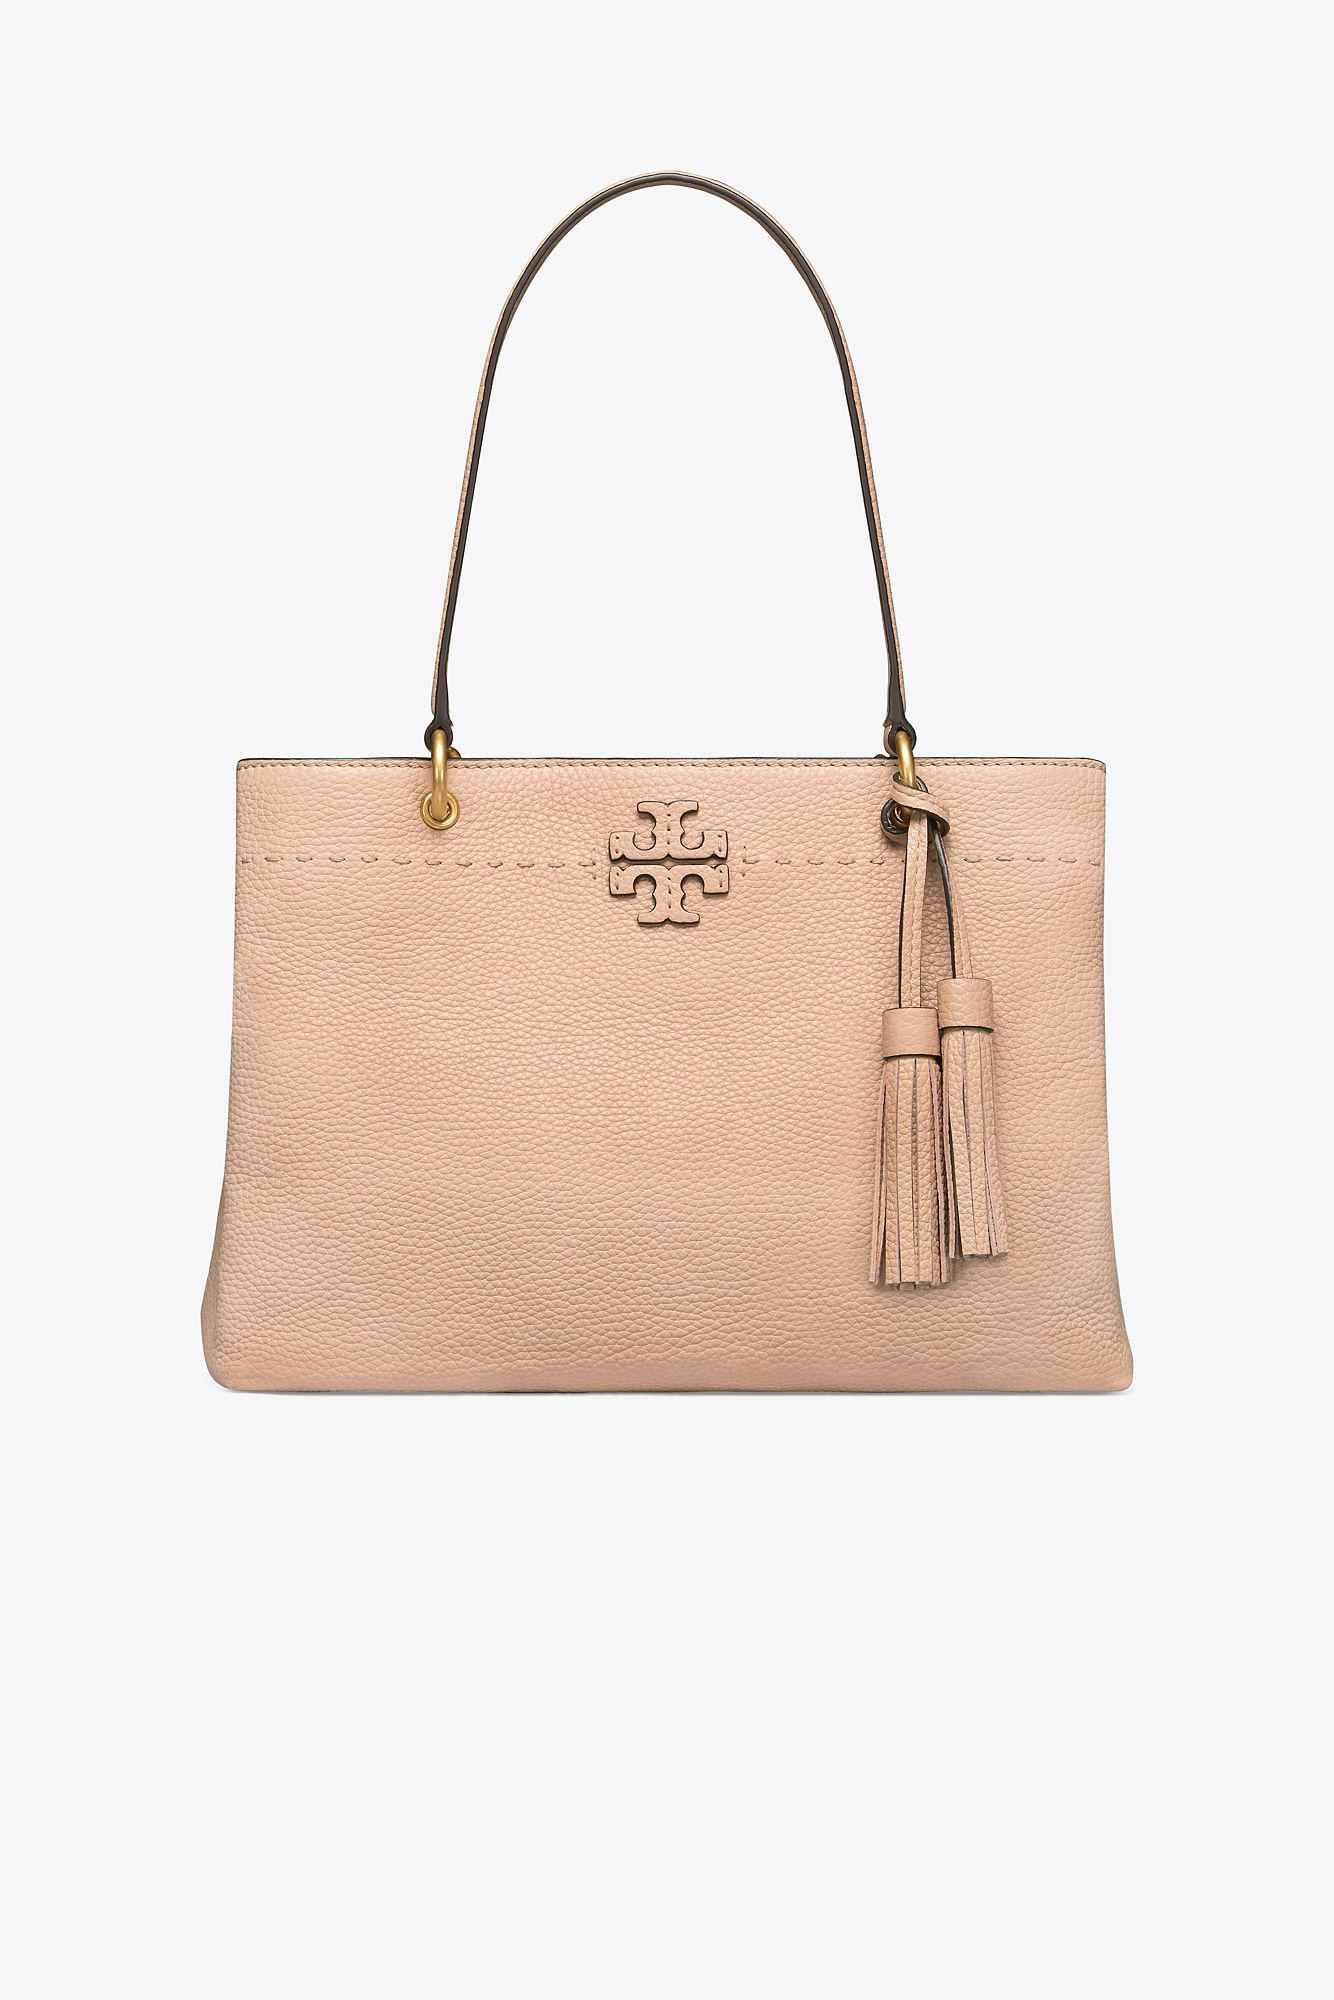 cc191f3b1aeb Lyst - Tory Burch Mcgraw Triple-compartment Ring Tote in Natural